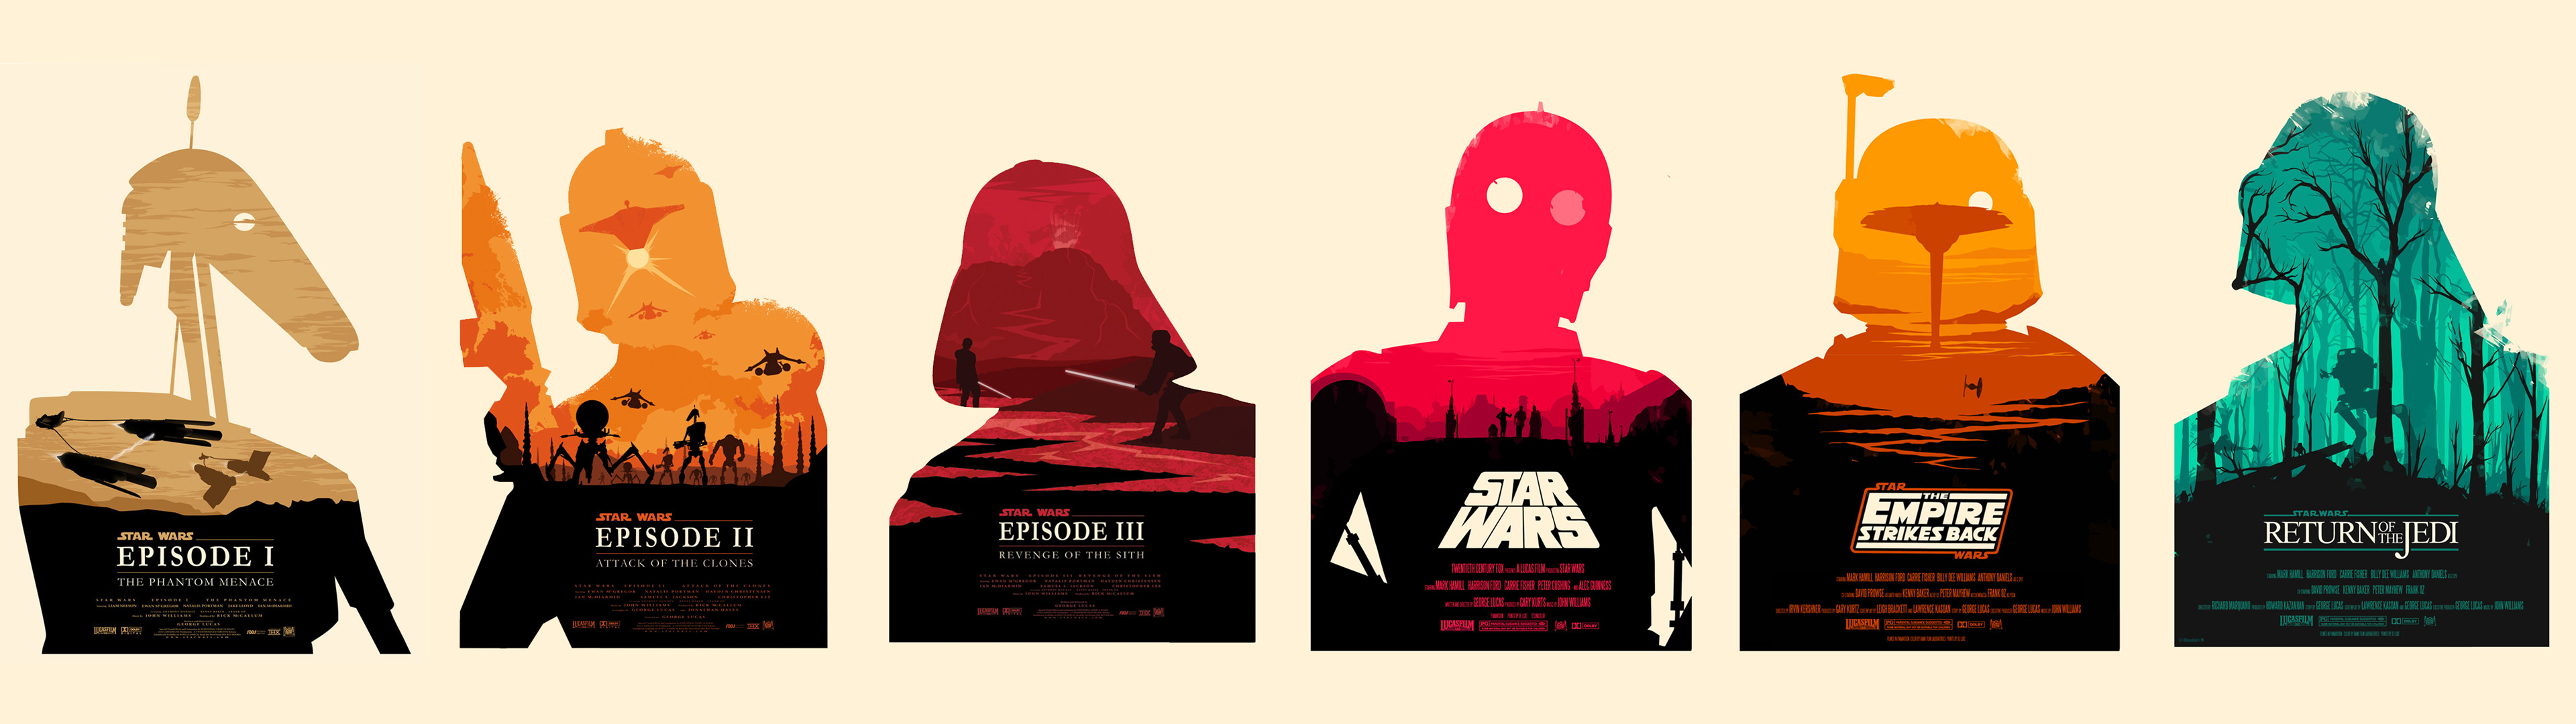 3840x1080 Wallpaper Star Wars 56 Images